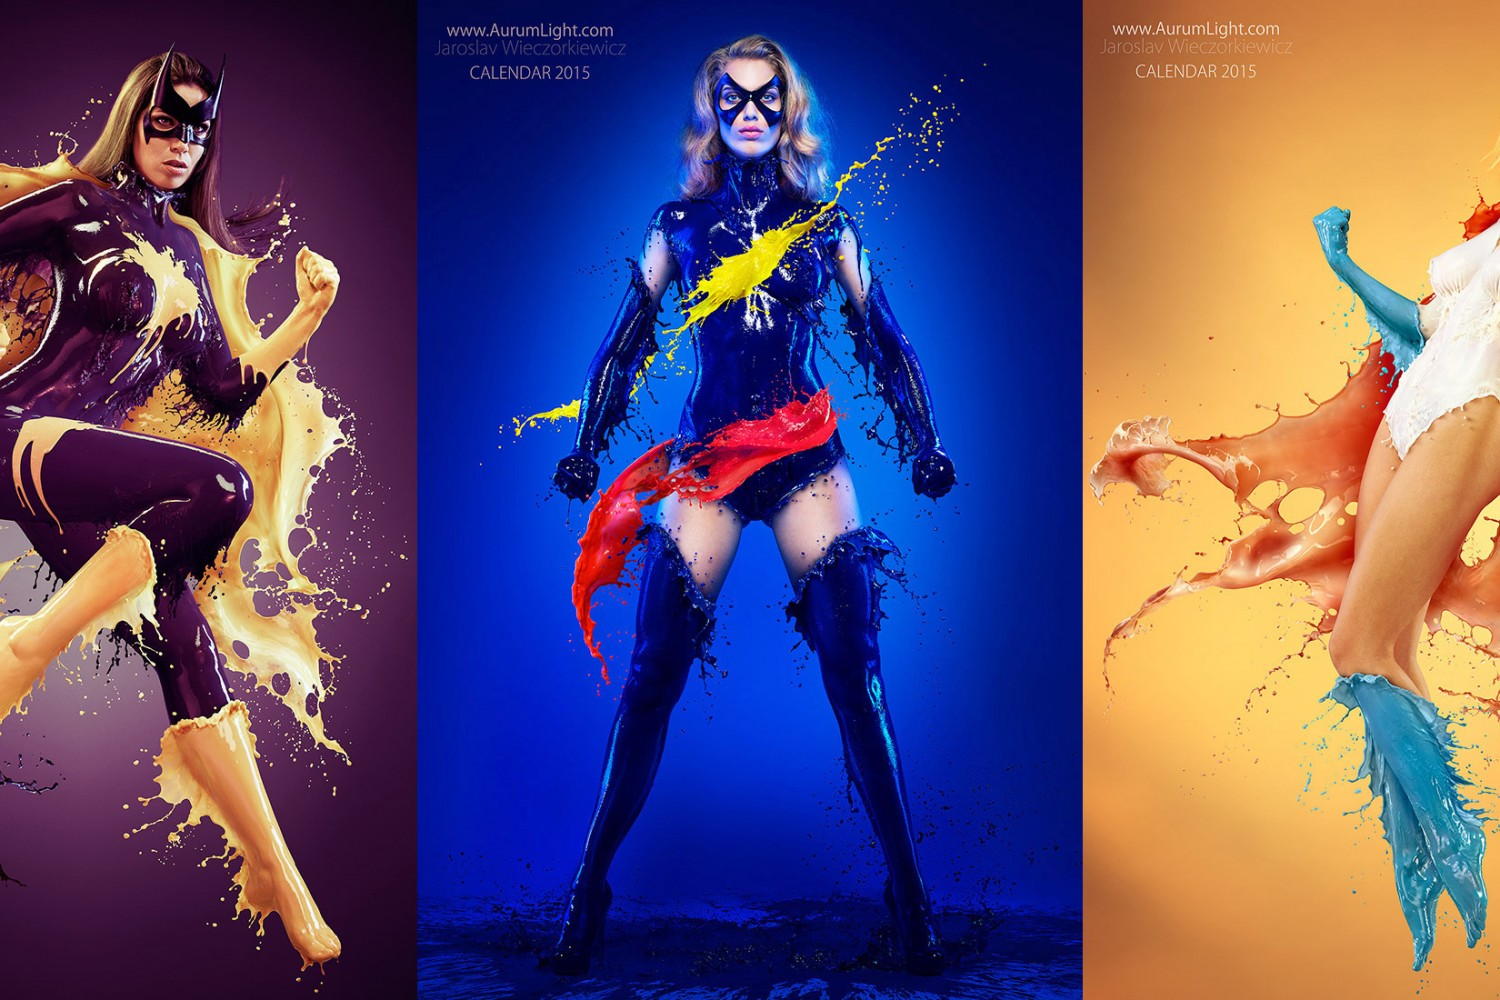 Photos of 'Splash Heroes' Who Wear Costumes Made of Milk... and Nothing Else (NSFW)